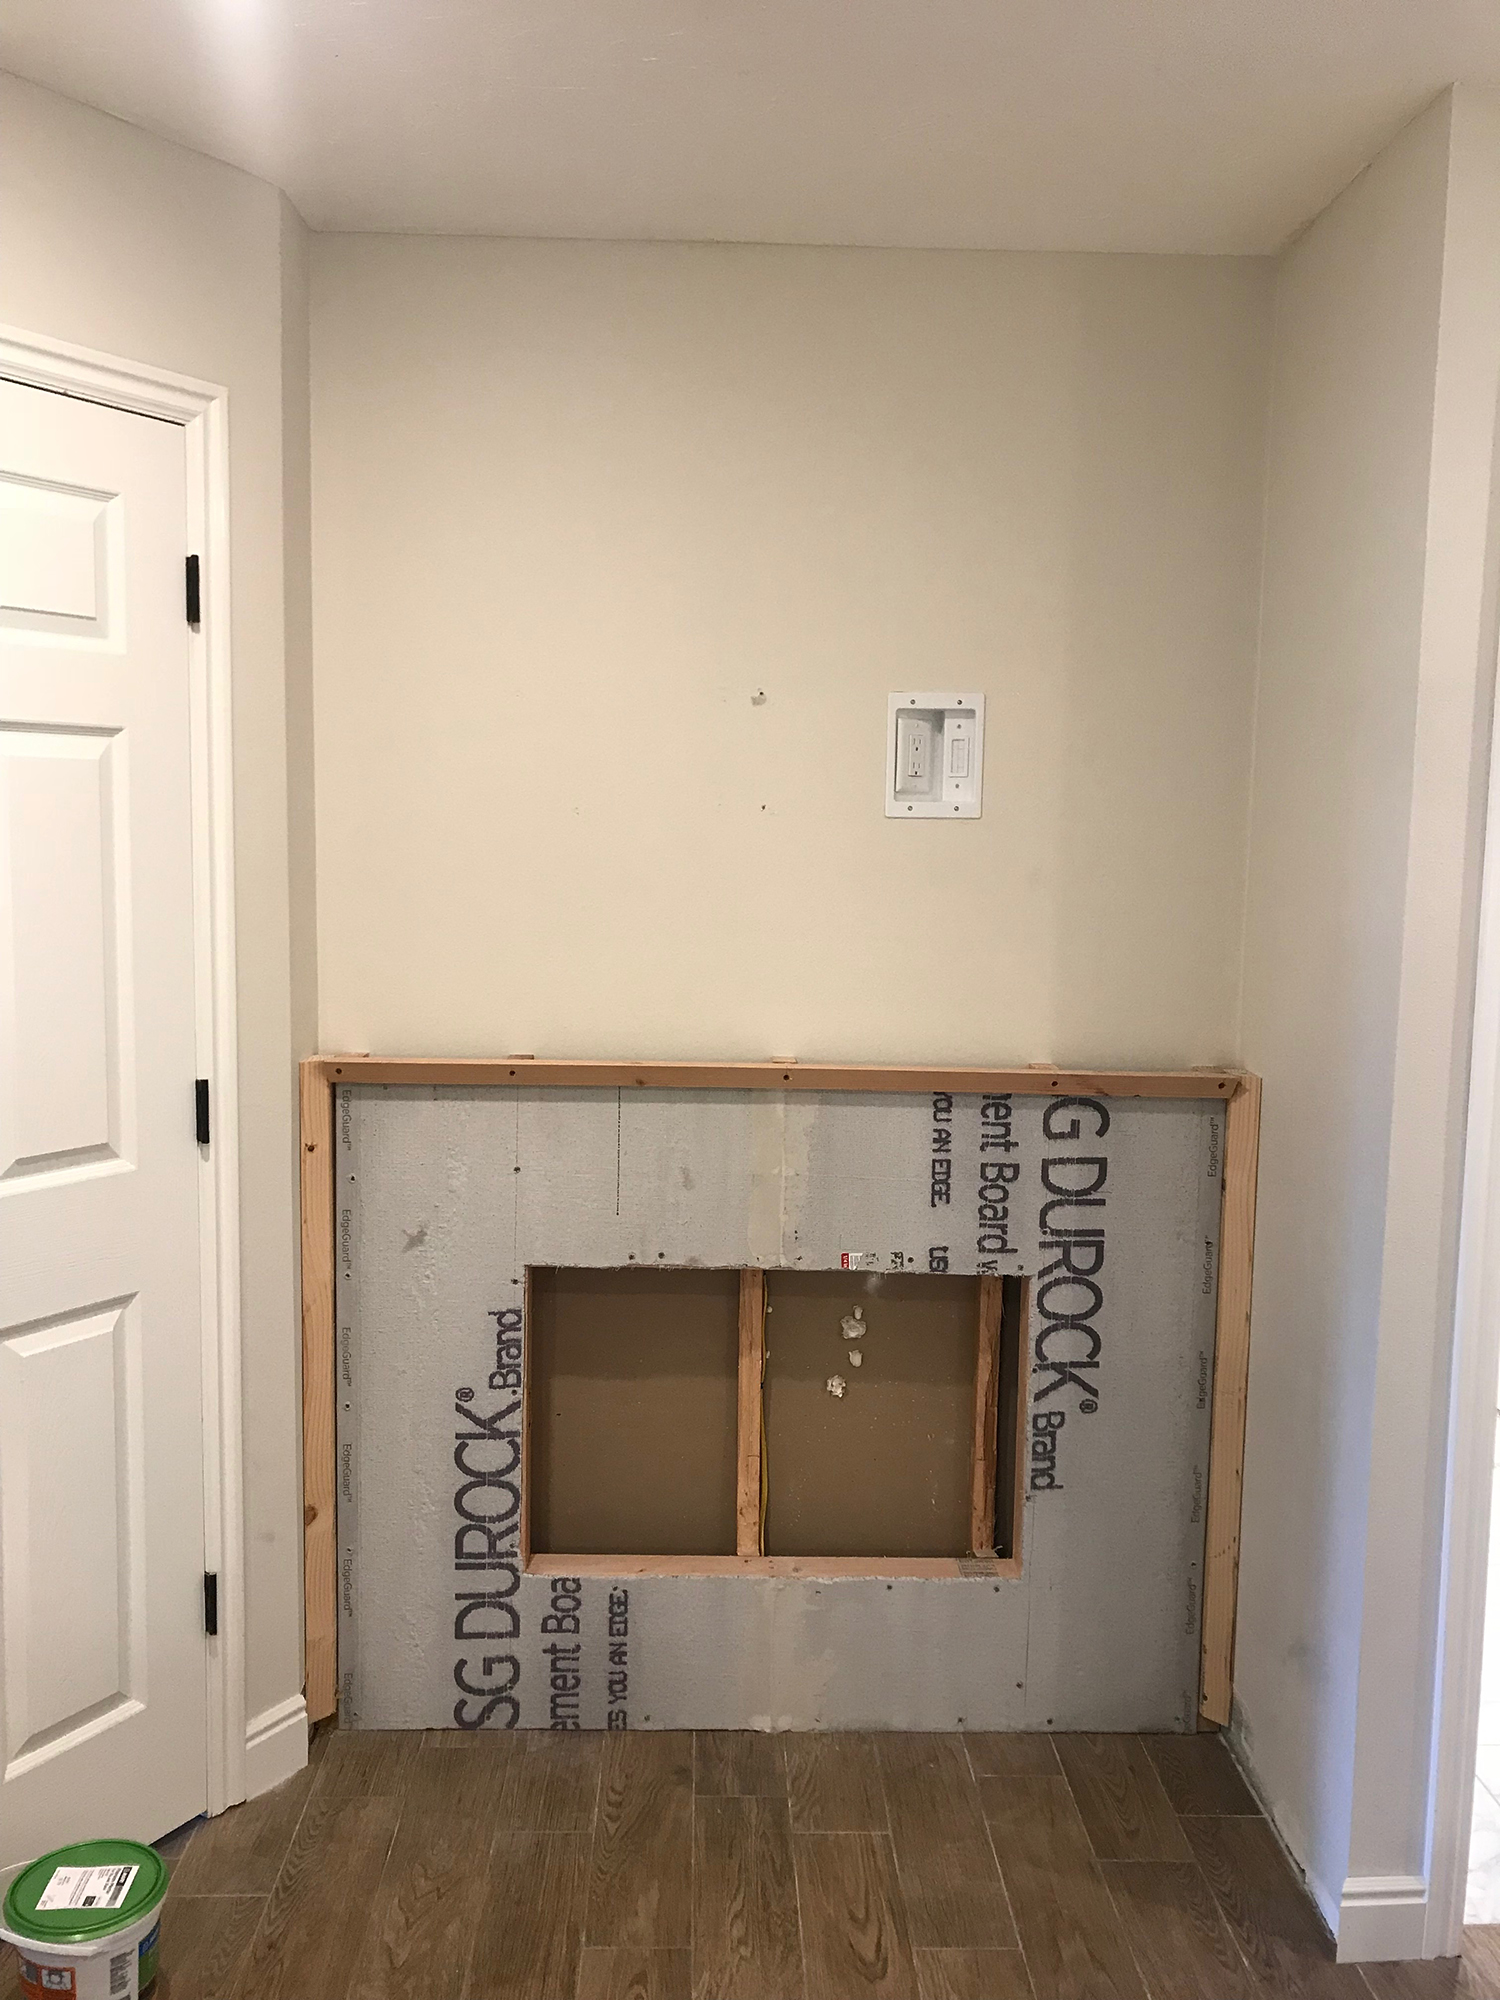 DIY Built in Electric Fireplace